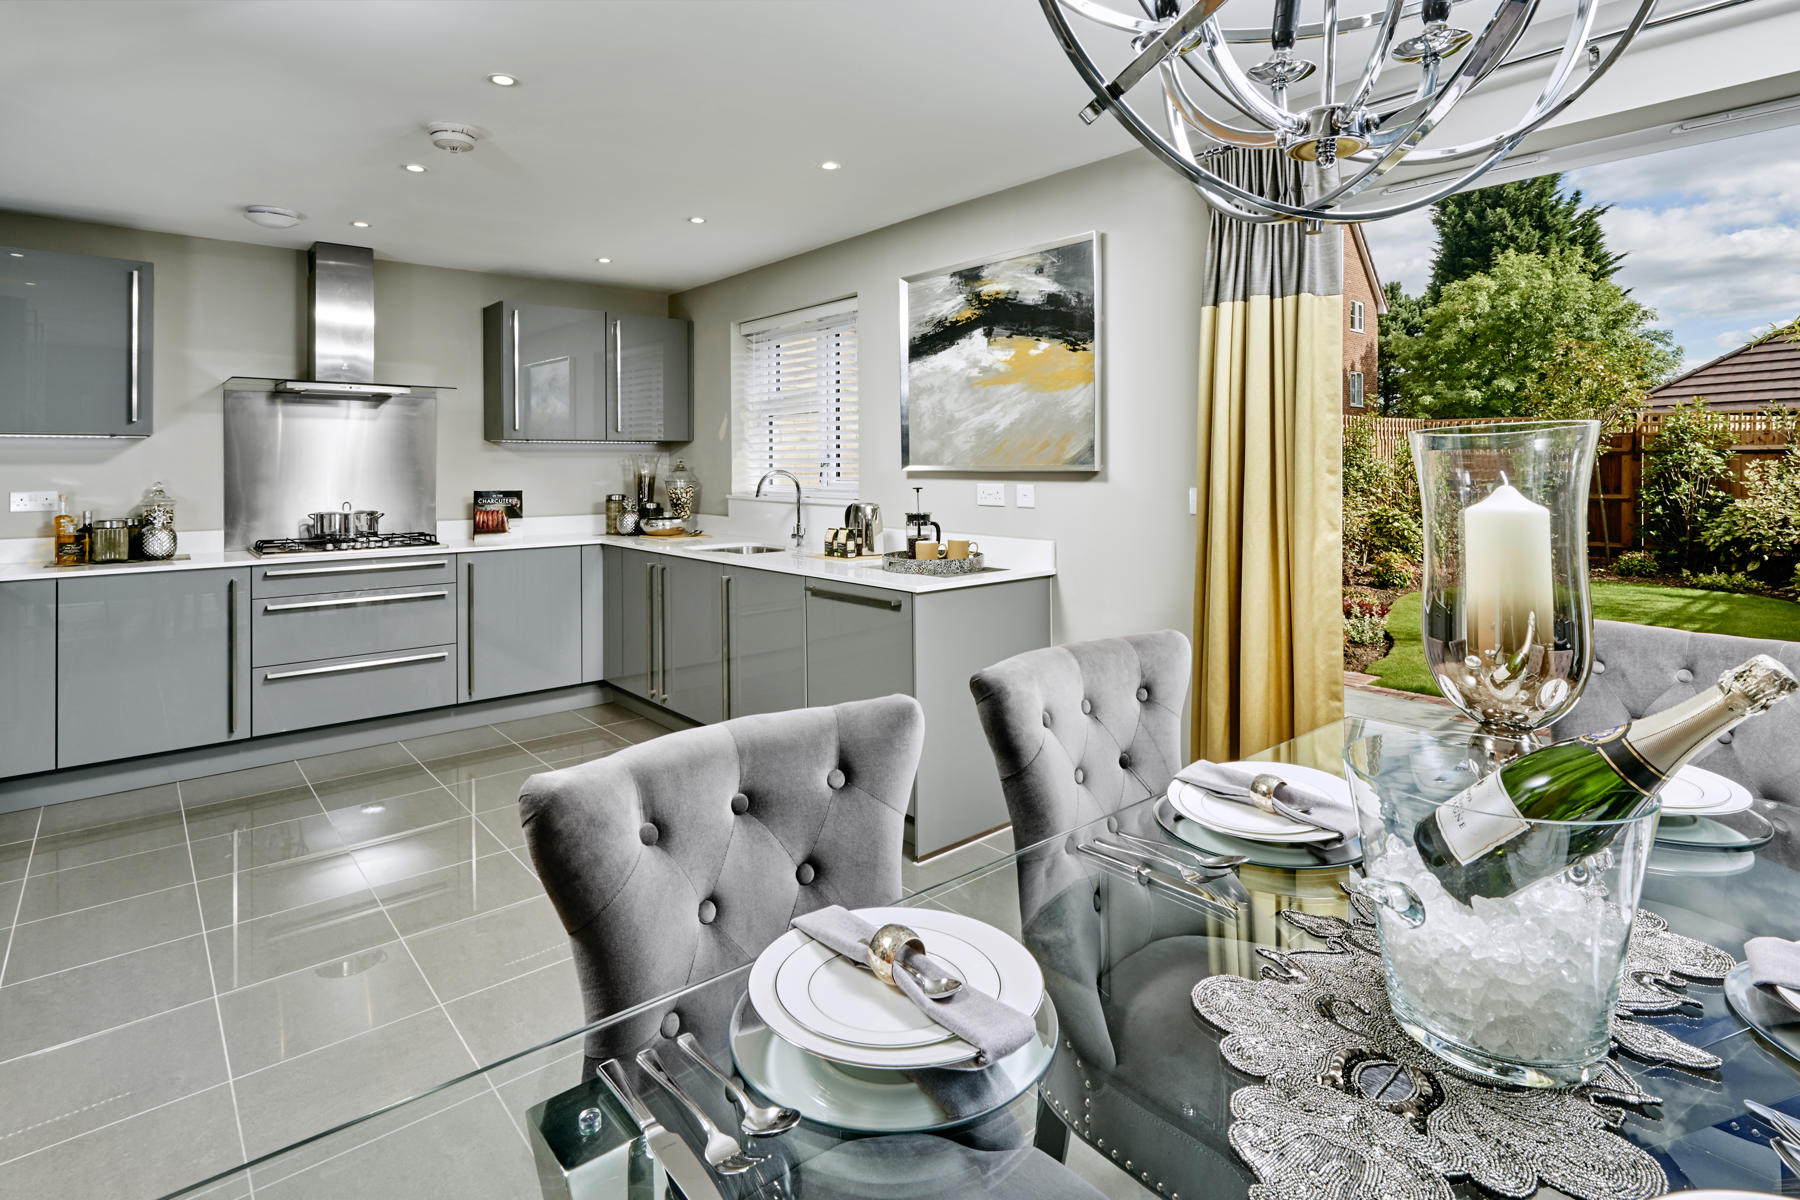 TW West London_Highfield Court_Gloster_Kitchen Diner_1800x1200